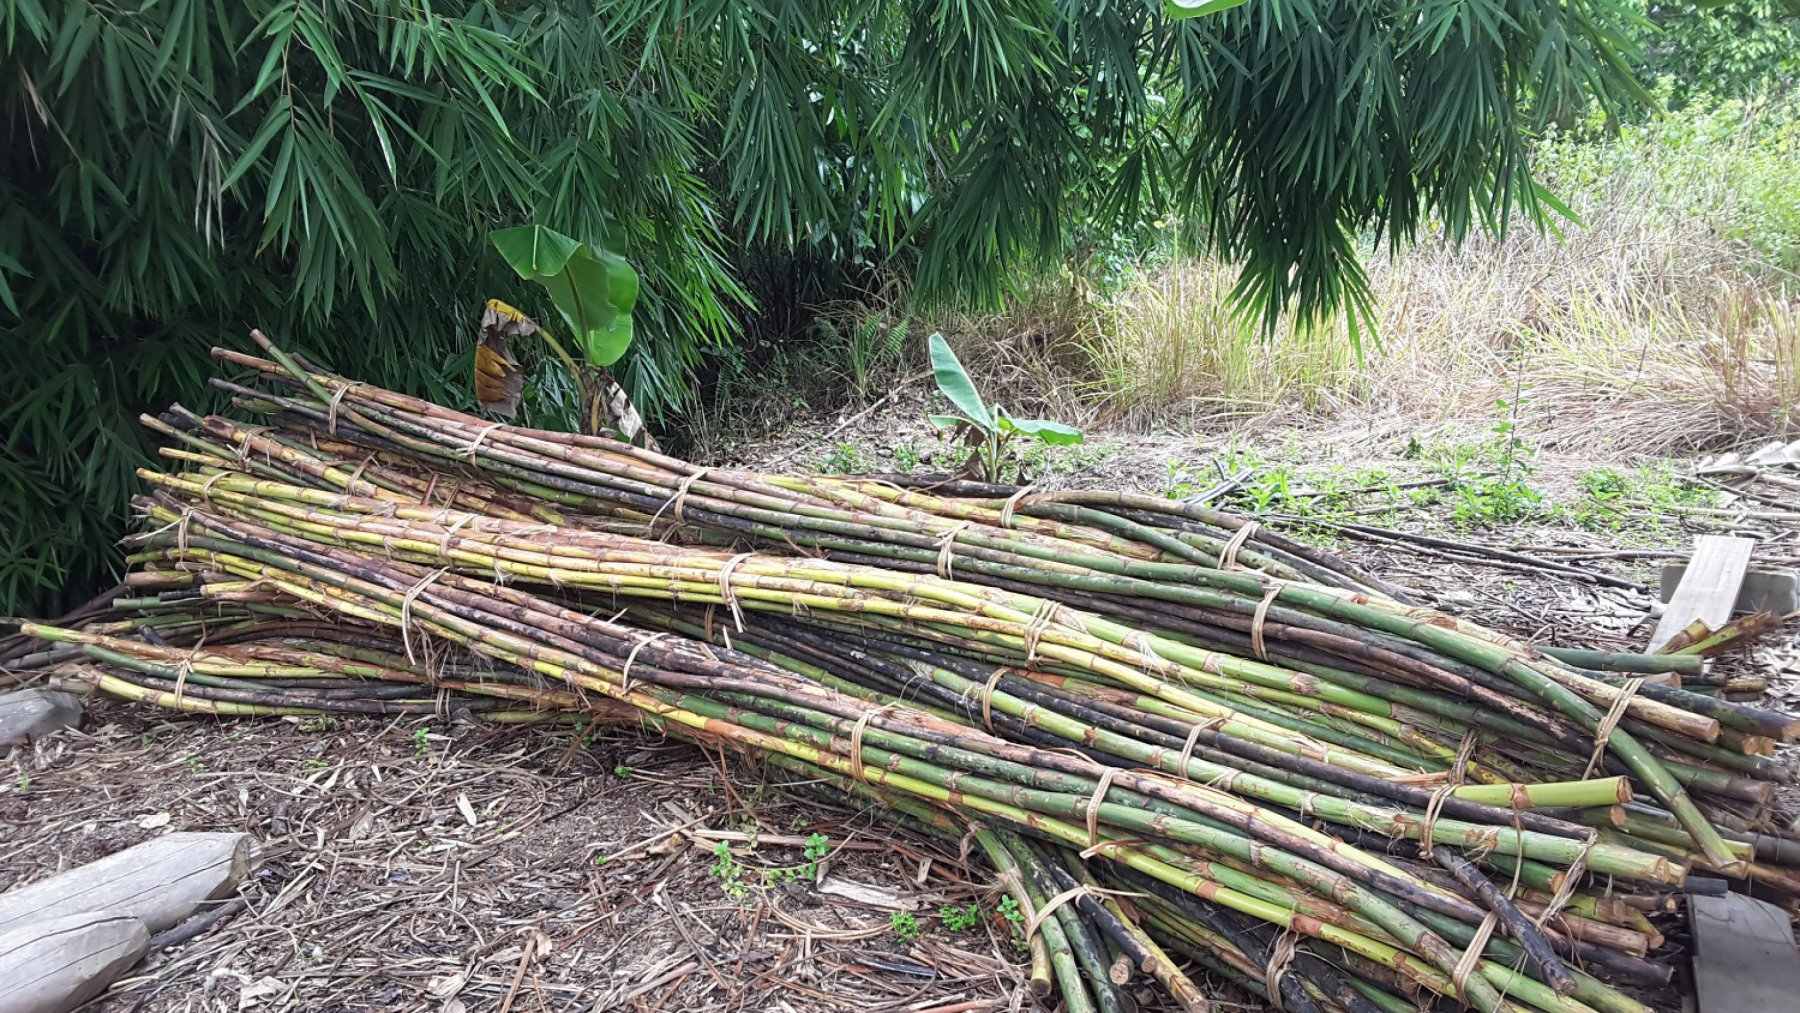 The raw material of rattan harvested from a well managed forest (© Kurniadi Camba / WWF-Indonesia)